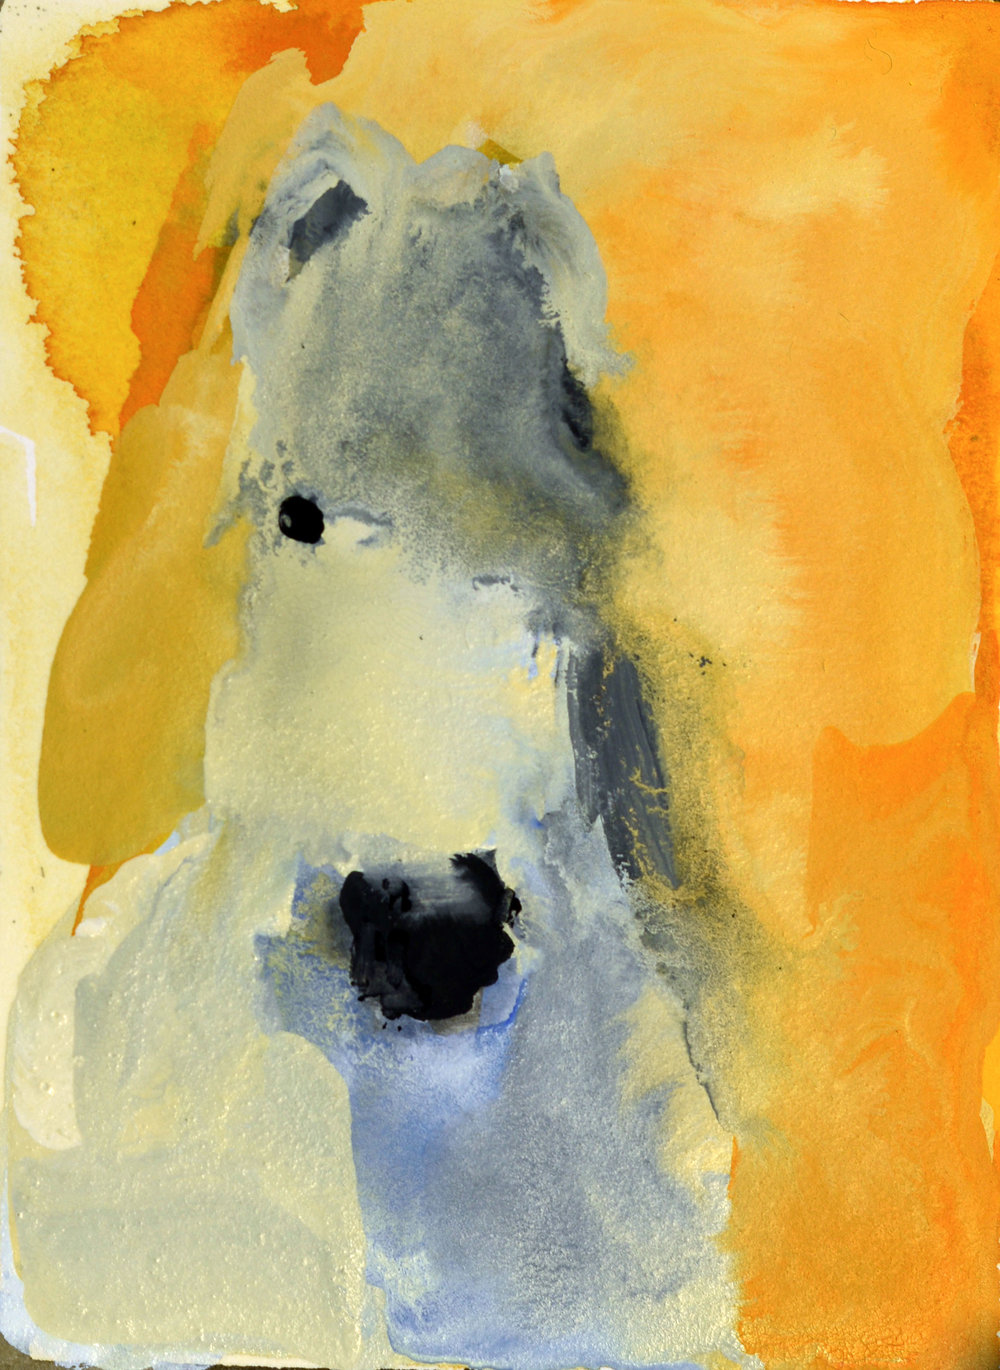 White Horse (on Orange)4x3 inset on 11 x 7.5 paper.jpg